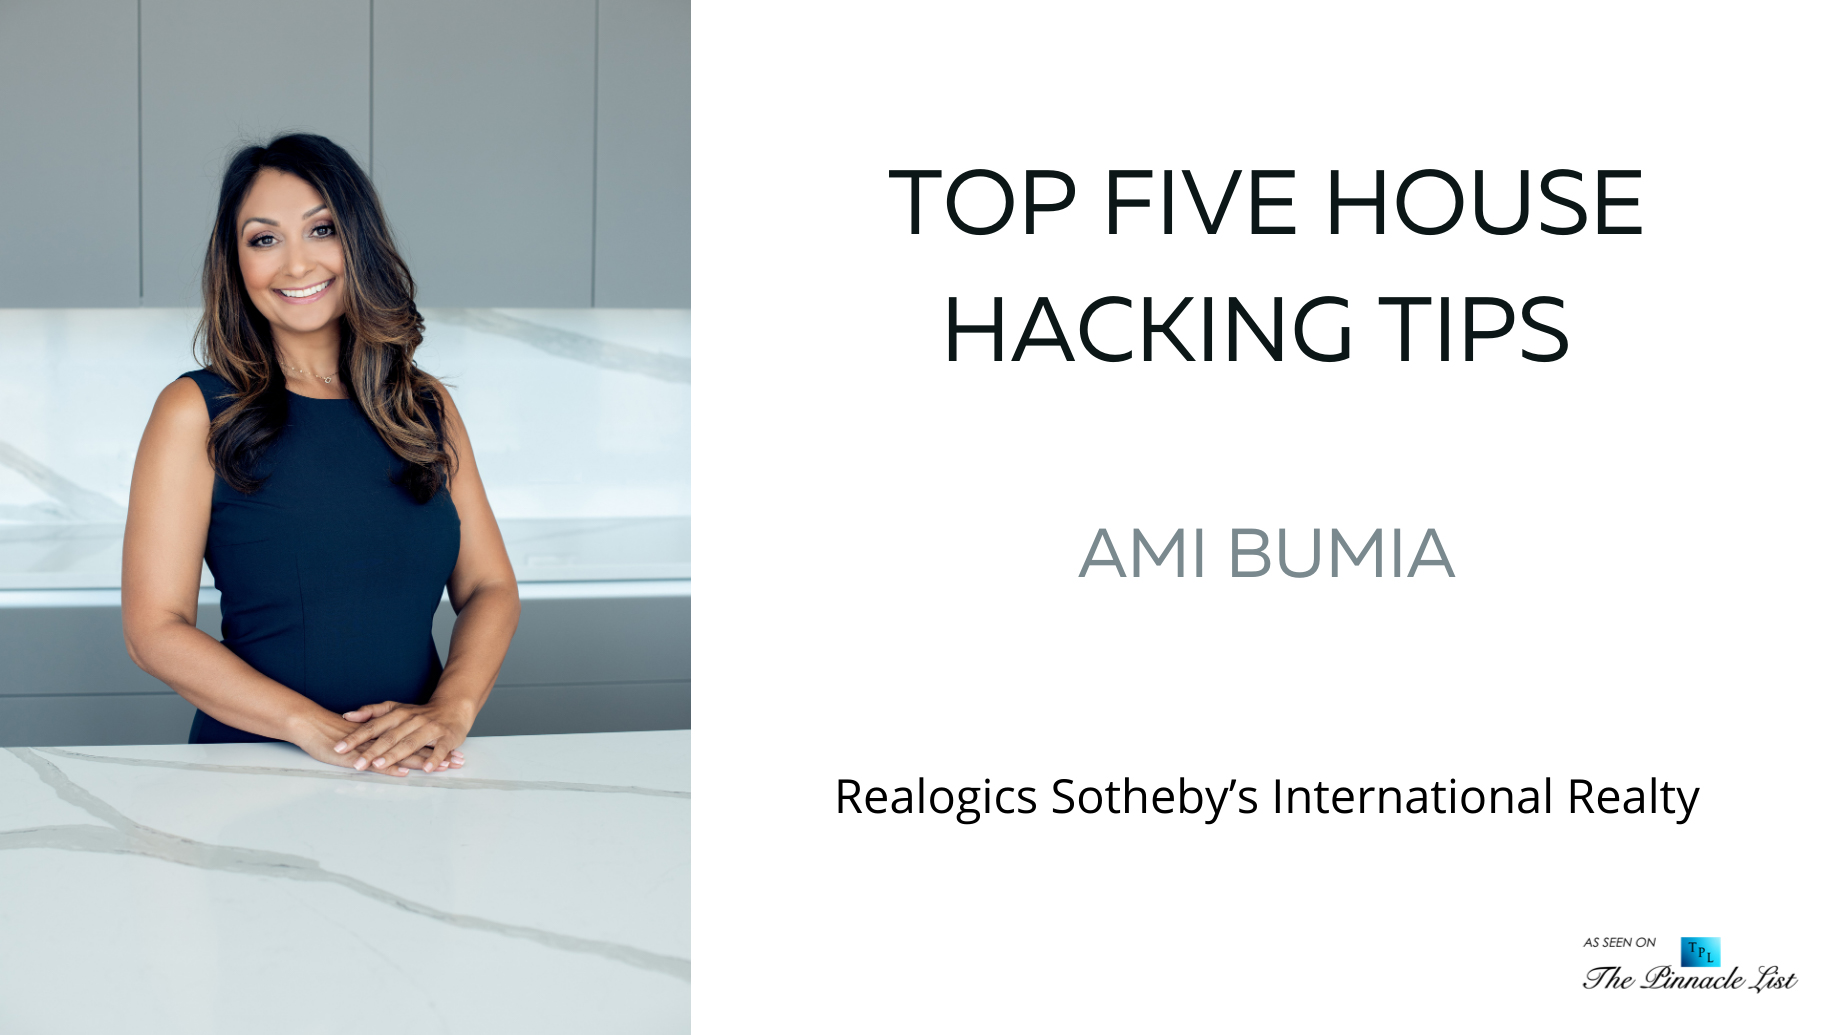 Top Five House Hacking Tips - Ami Bumia of Realogics Sotheby's International Realty